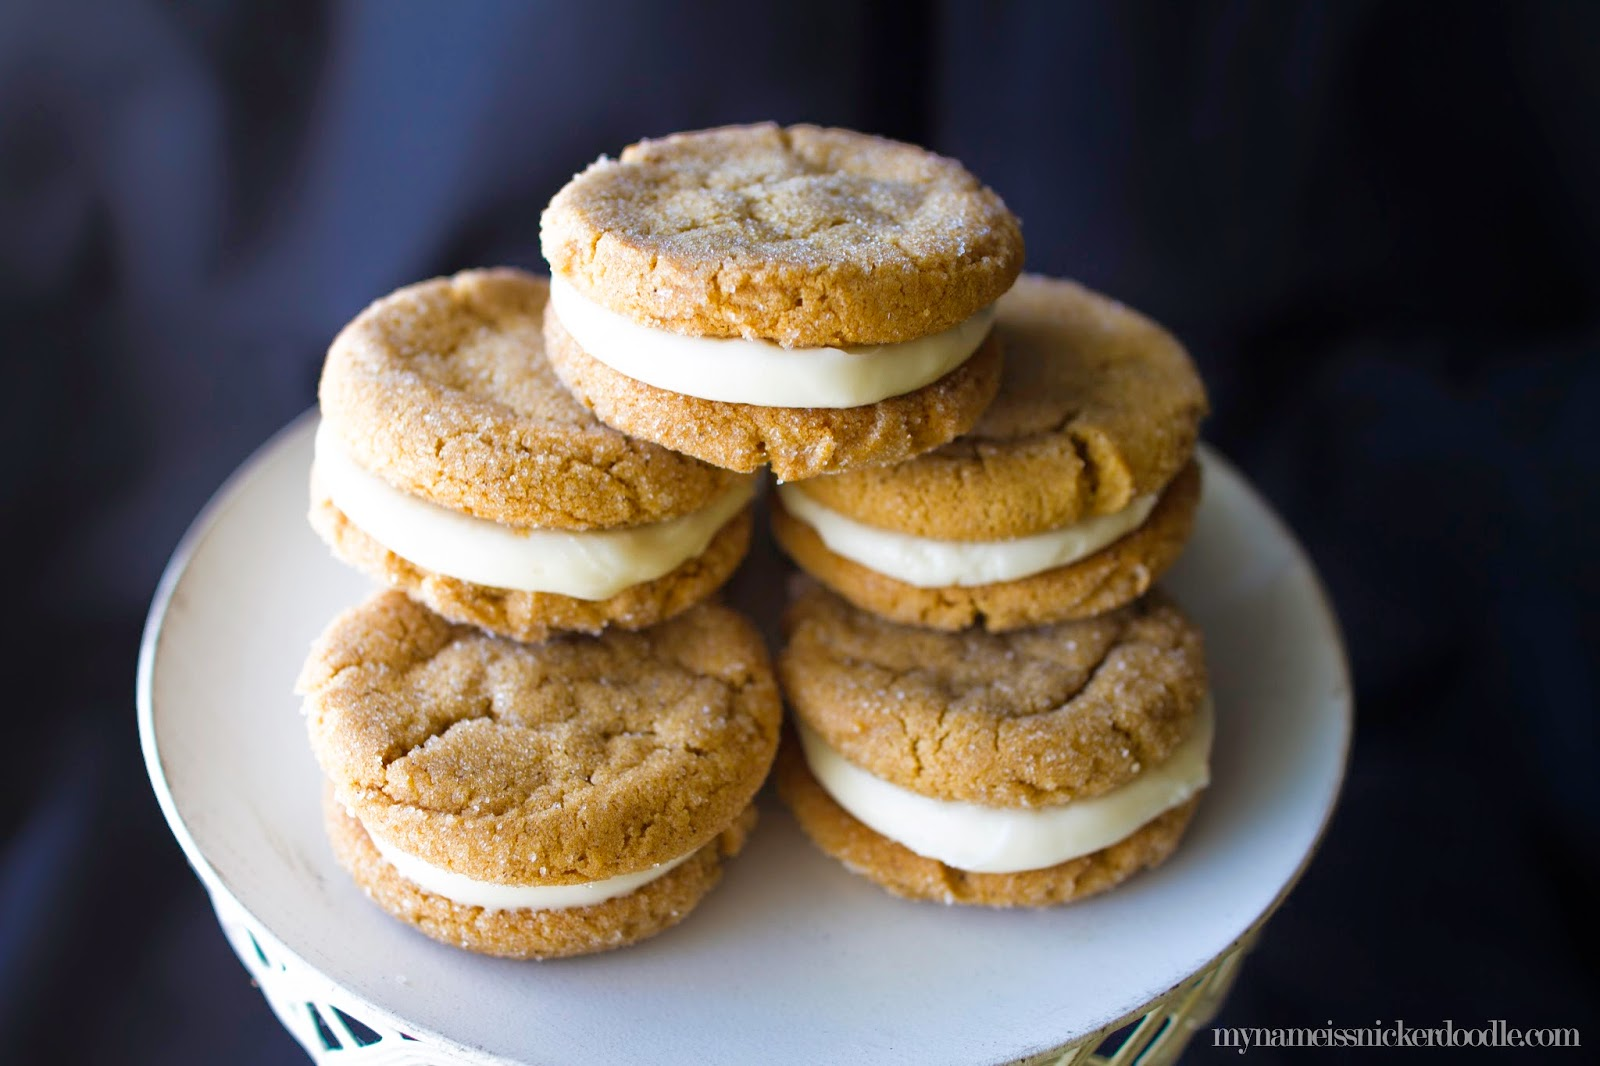 Ginger Sandwich Cookies with a Cream Cheese Frosting for a filling.  So soft, chewy and completely delicious!  |  My Name Is Snickerdoodle